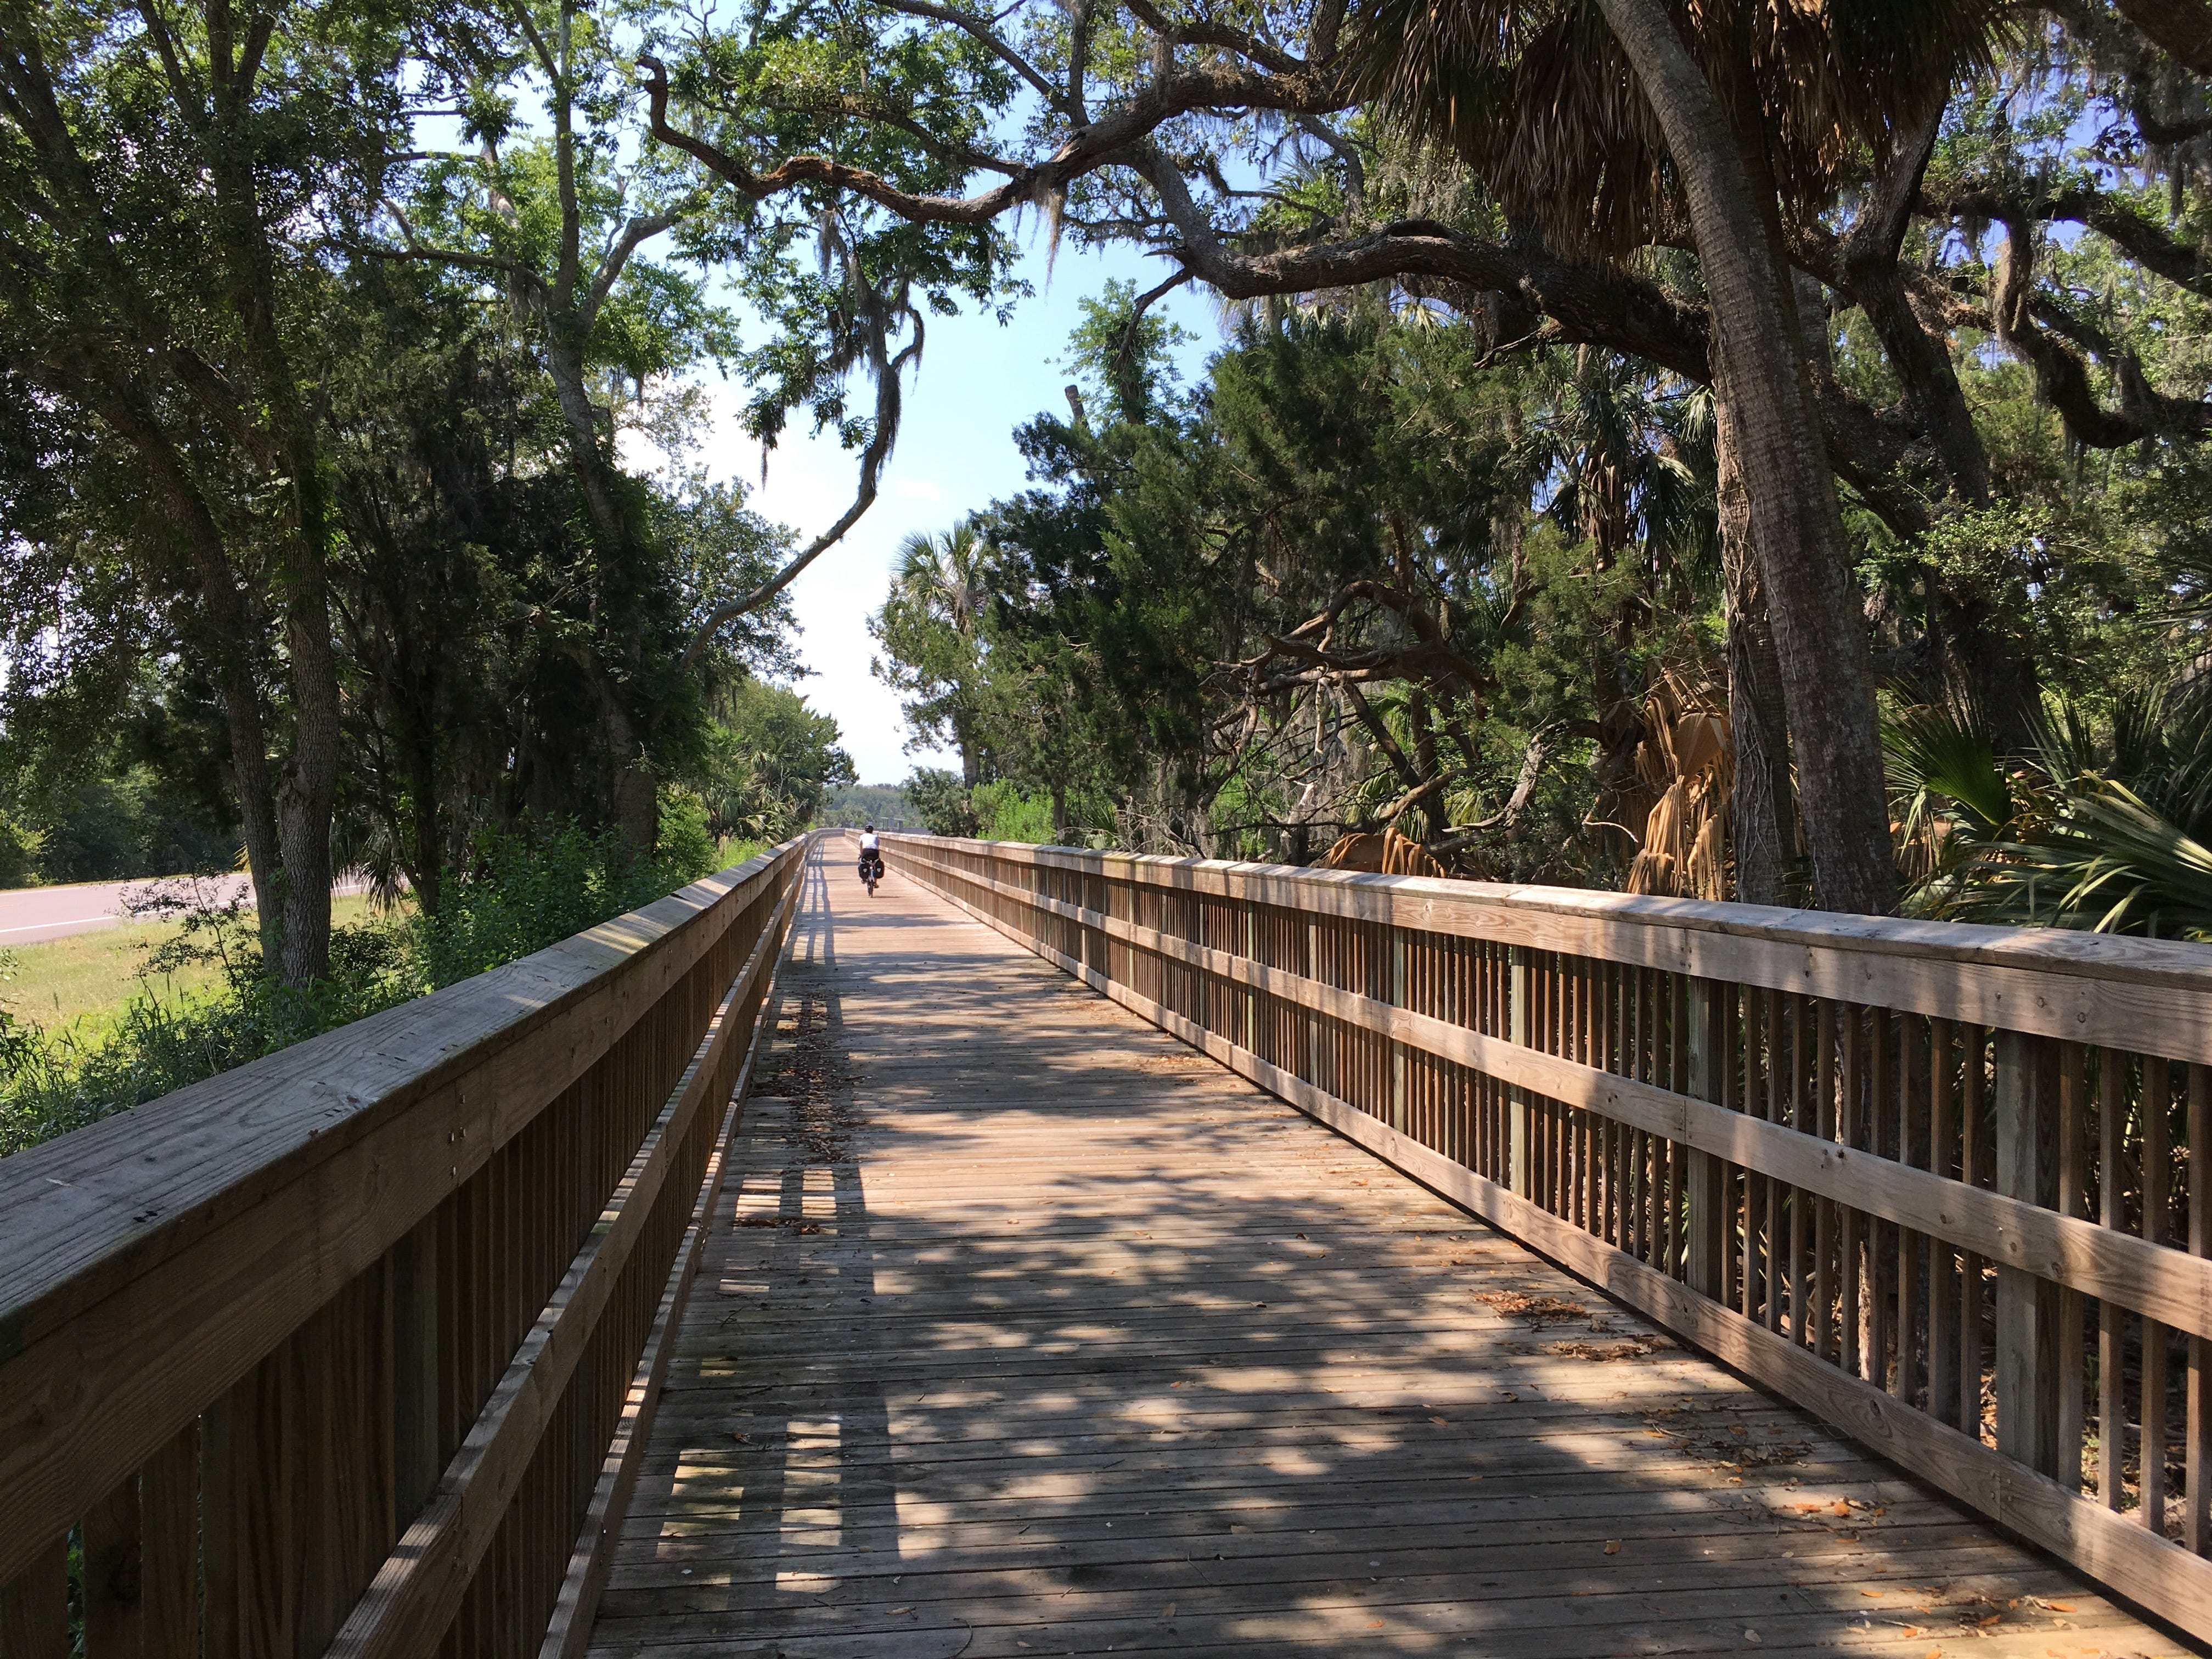 The Timucuan Trail in Florida runs through Big Talbot and Little Talbot state parks and offers beautiful views of the coast with side trails to beaches.